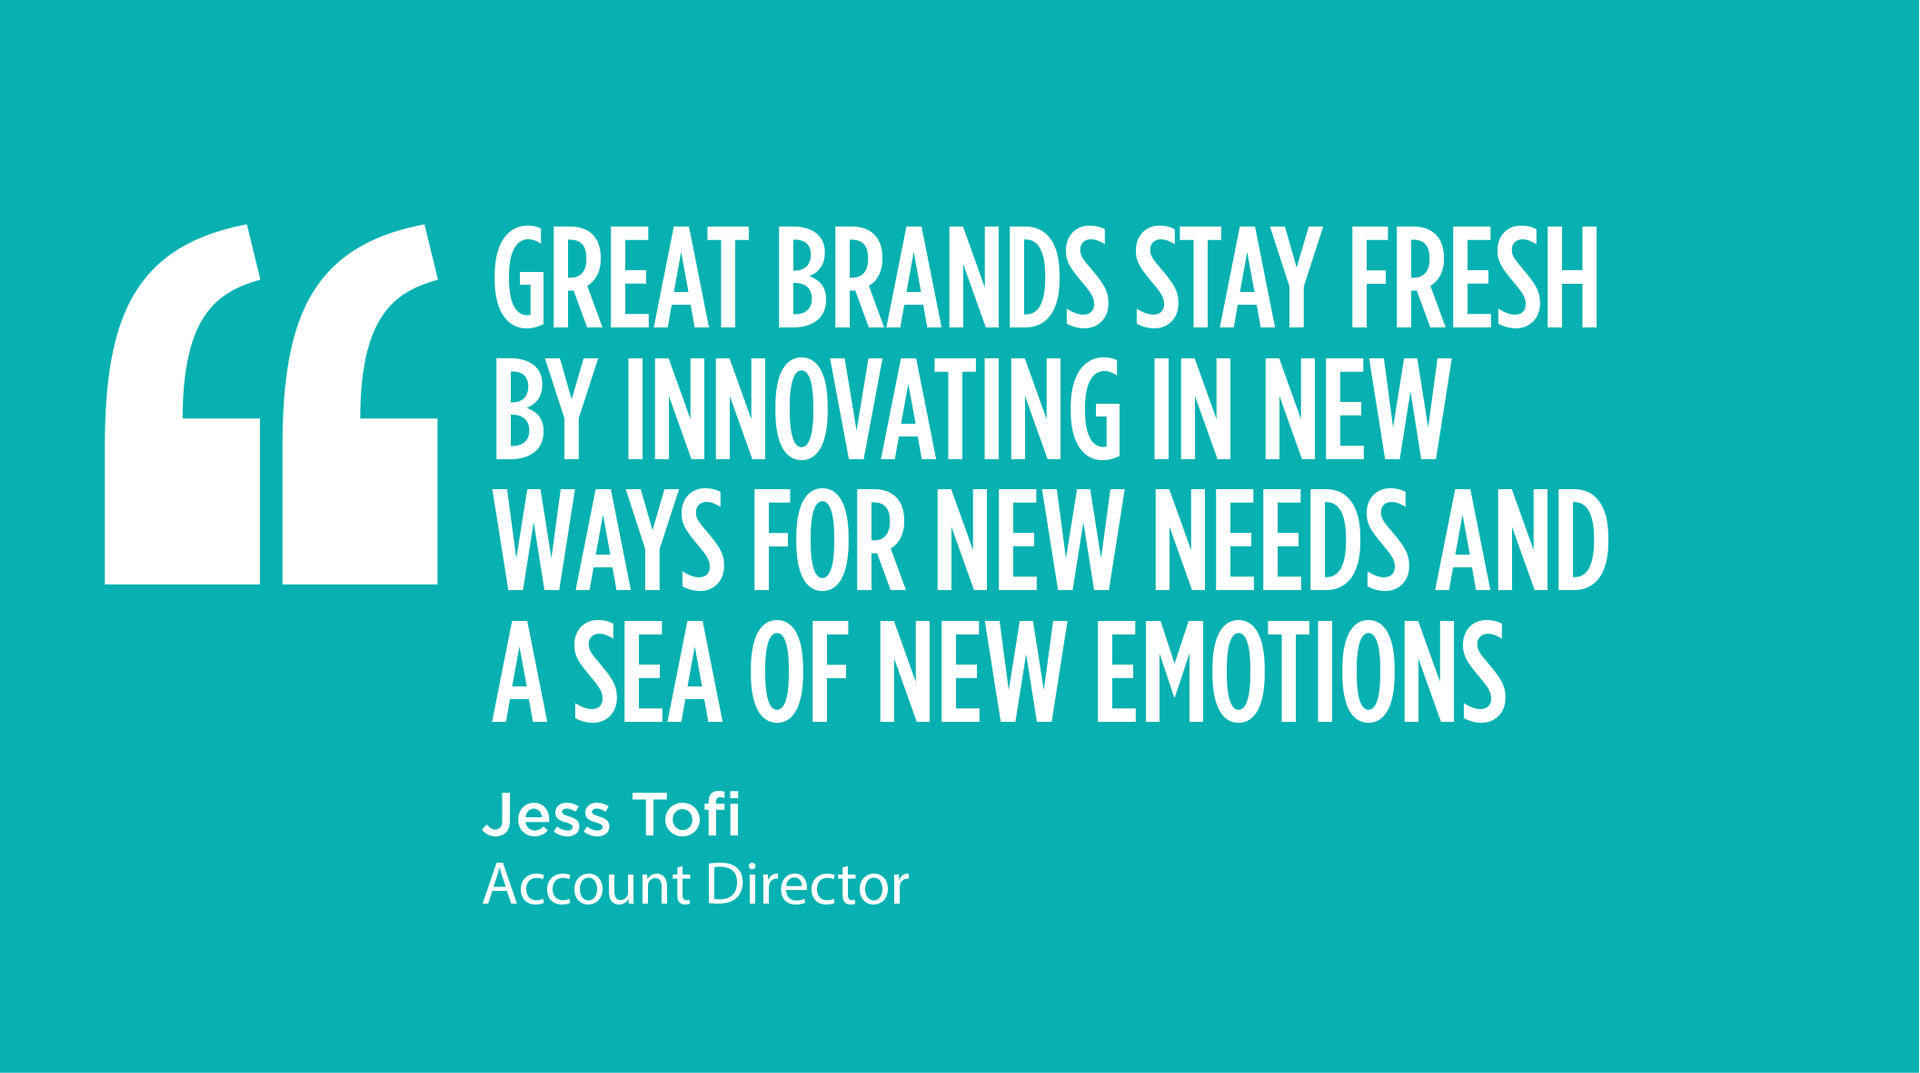 GREAT BRANDS STAY FRESH BY INNOVATING IN NEW WAYS FOR NEW NEEDS AND A SEA OF NEW EMOTIONS - Jess Tofi, Account Director